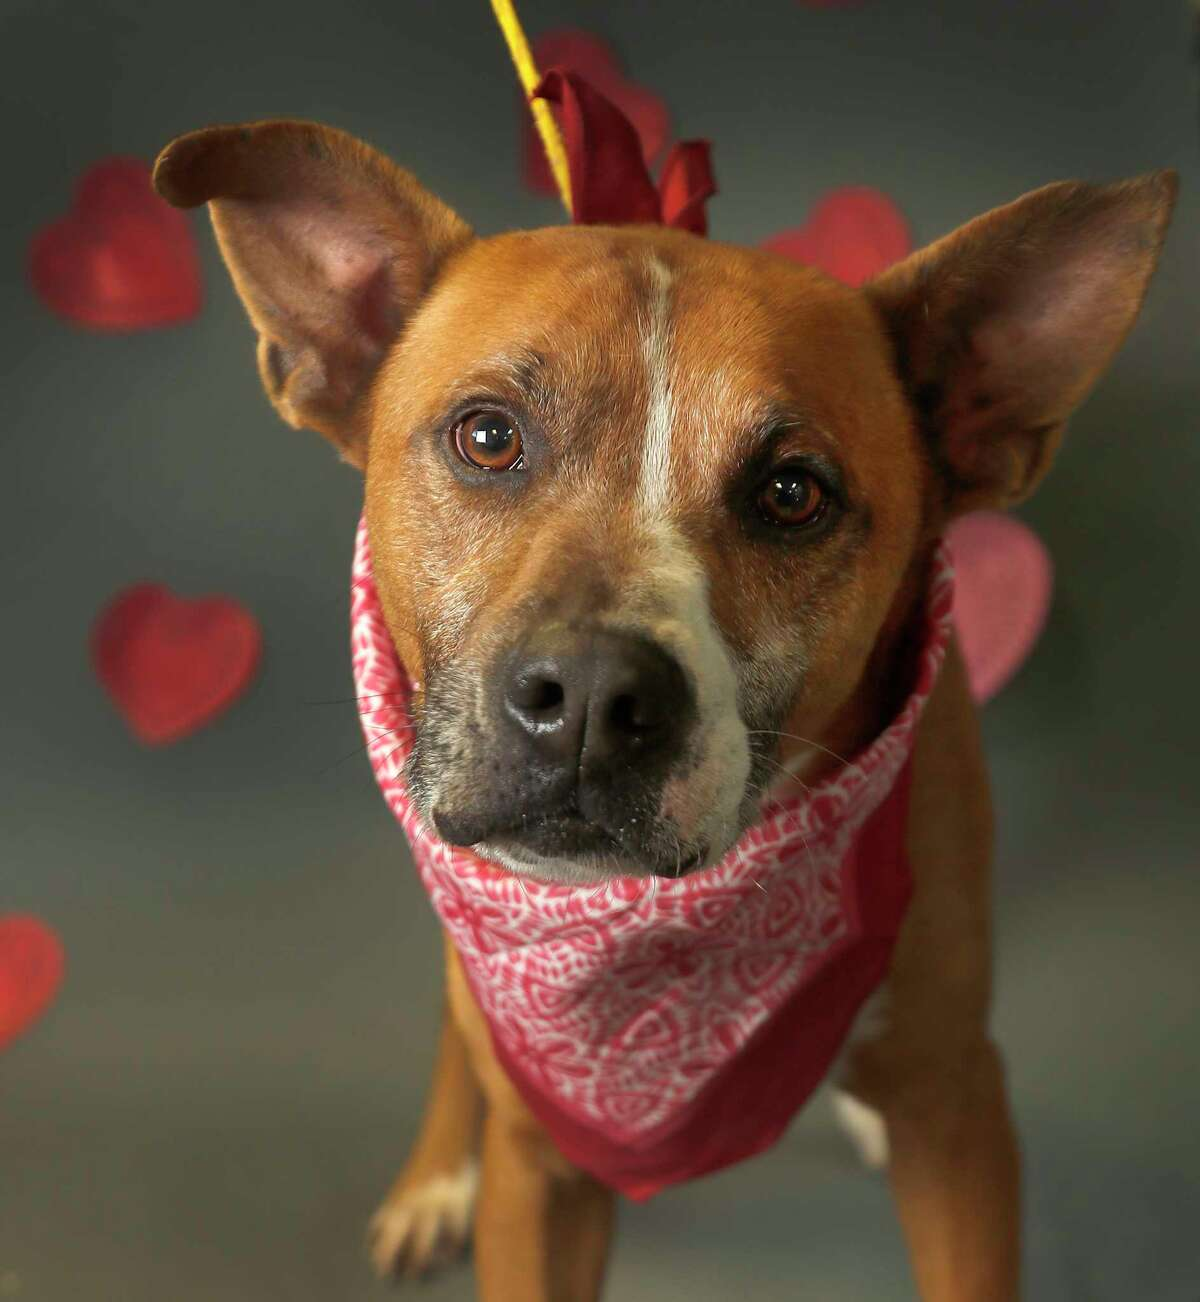 Prince is a 5-year-old, male, Boxer mix, who has heartworms and is ready to be adopted for $5. from Harris County Animal Shelter. (Animal ID: A526735) Photographed Tuesday, Feb. 12, 2019, in Houston. Prince is eligable for post adoption heartworm treatment through the Heal a Heart program.